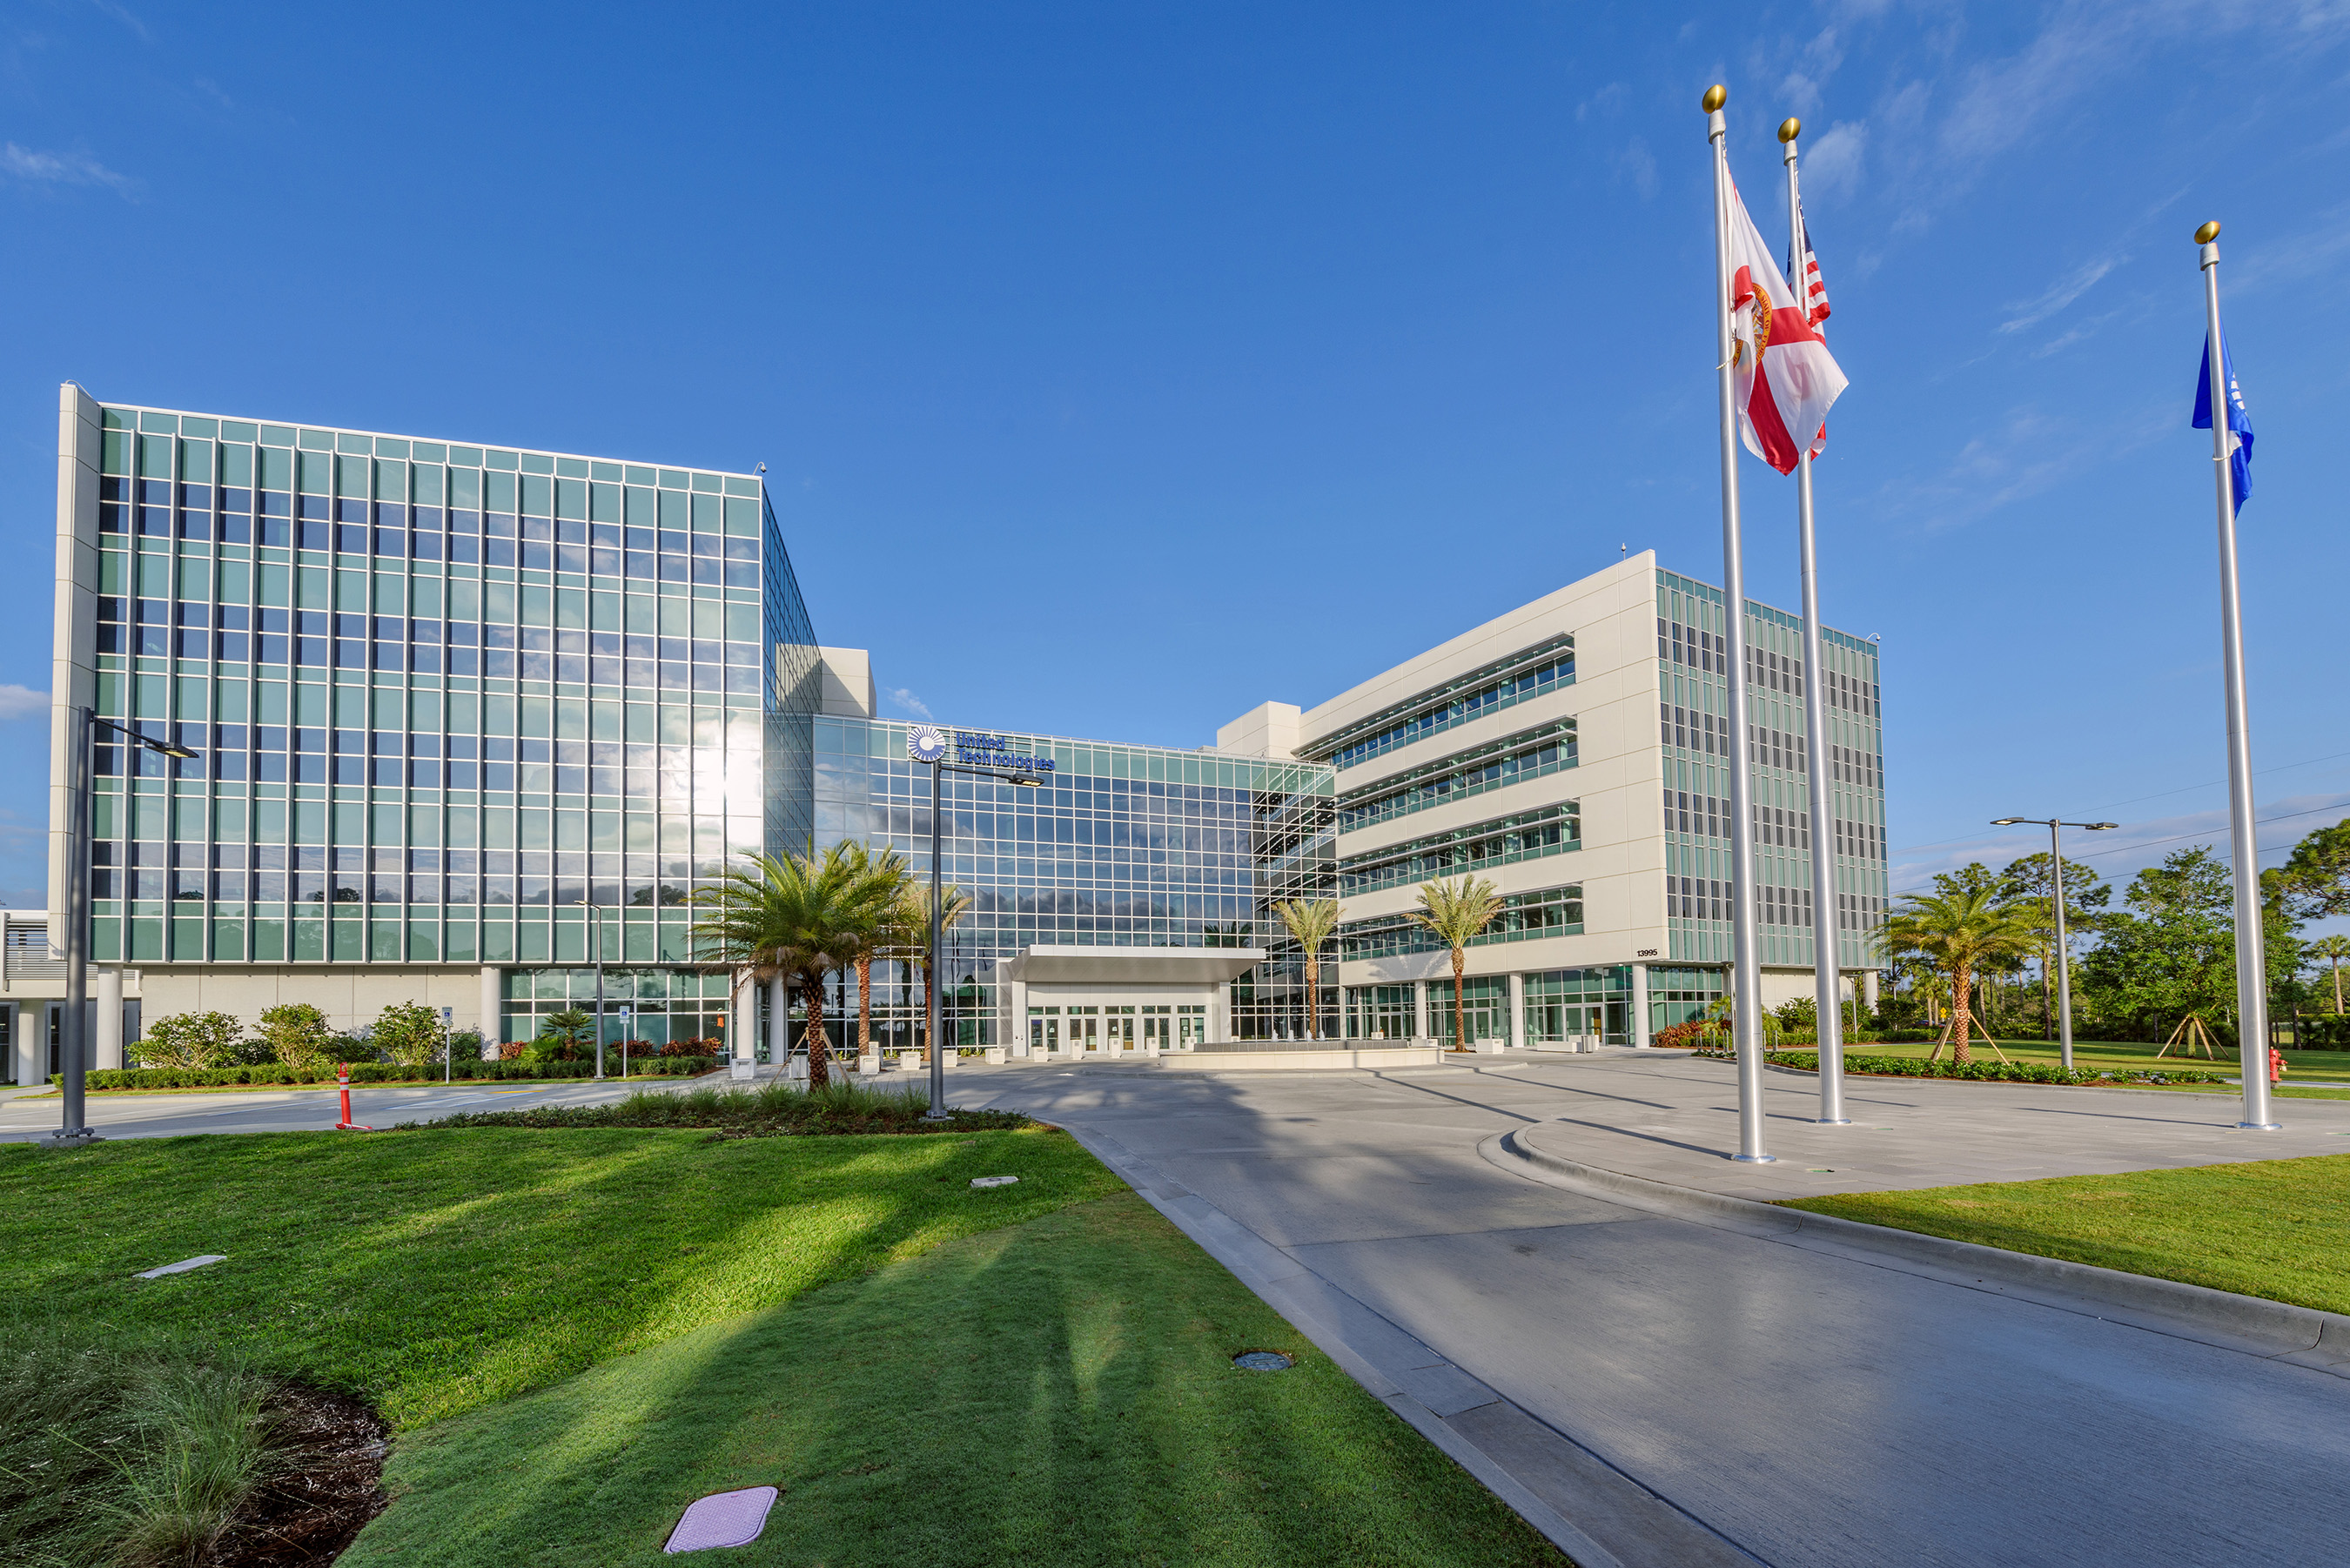 The UTC Center for Intelligent Buildings is a first-of-its-kind technology, innovation and collaboration center showcasing United Technologies products and integrated systems.